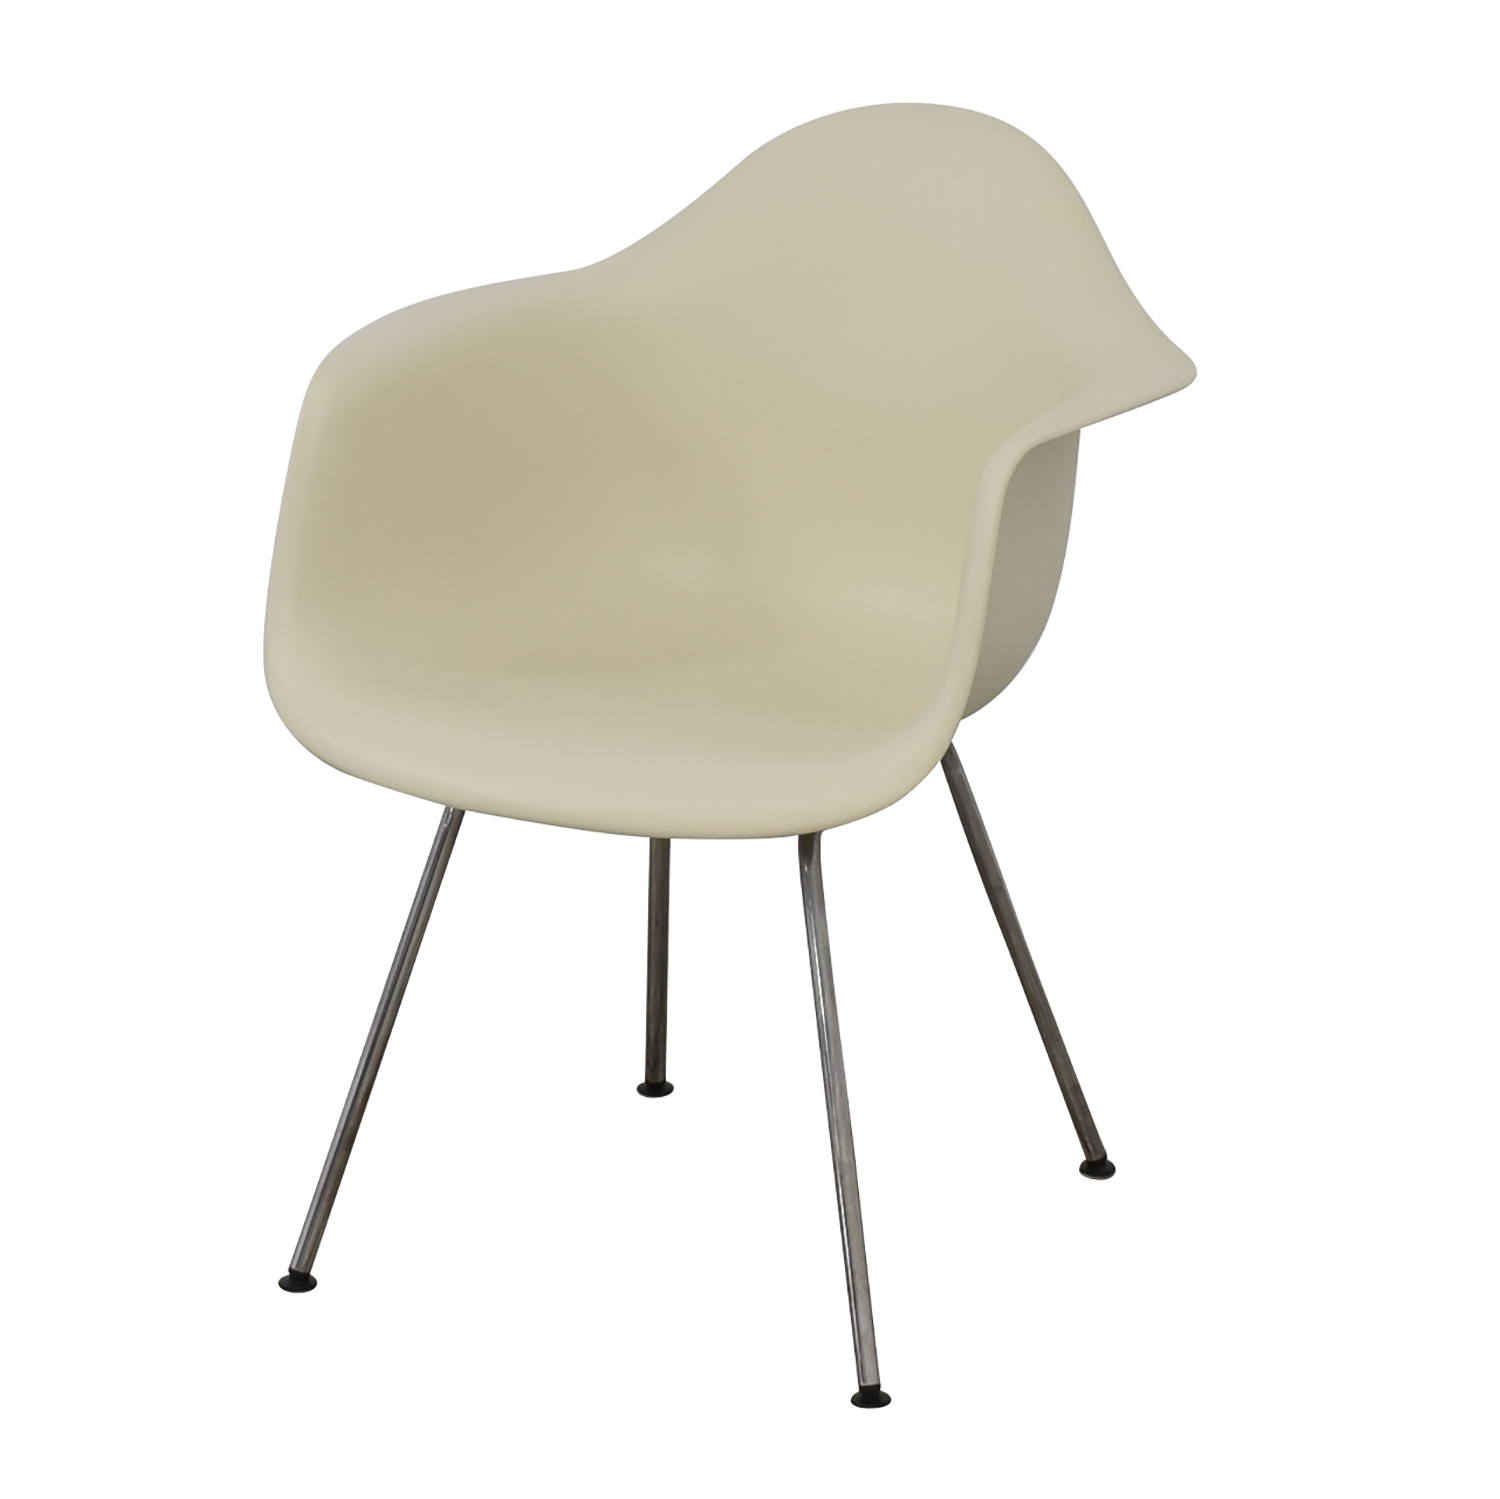 Design Within Reach Design Within Reach Eames Molded Plastic 4 Leg Armchairs second hand